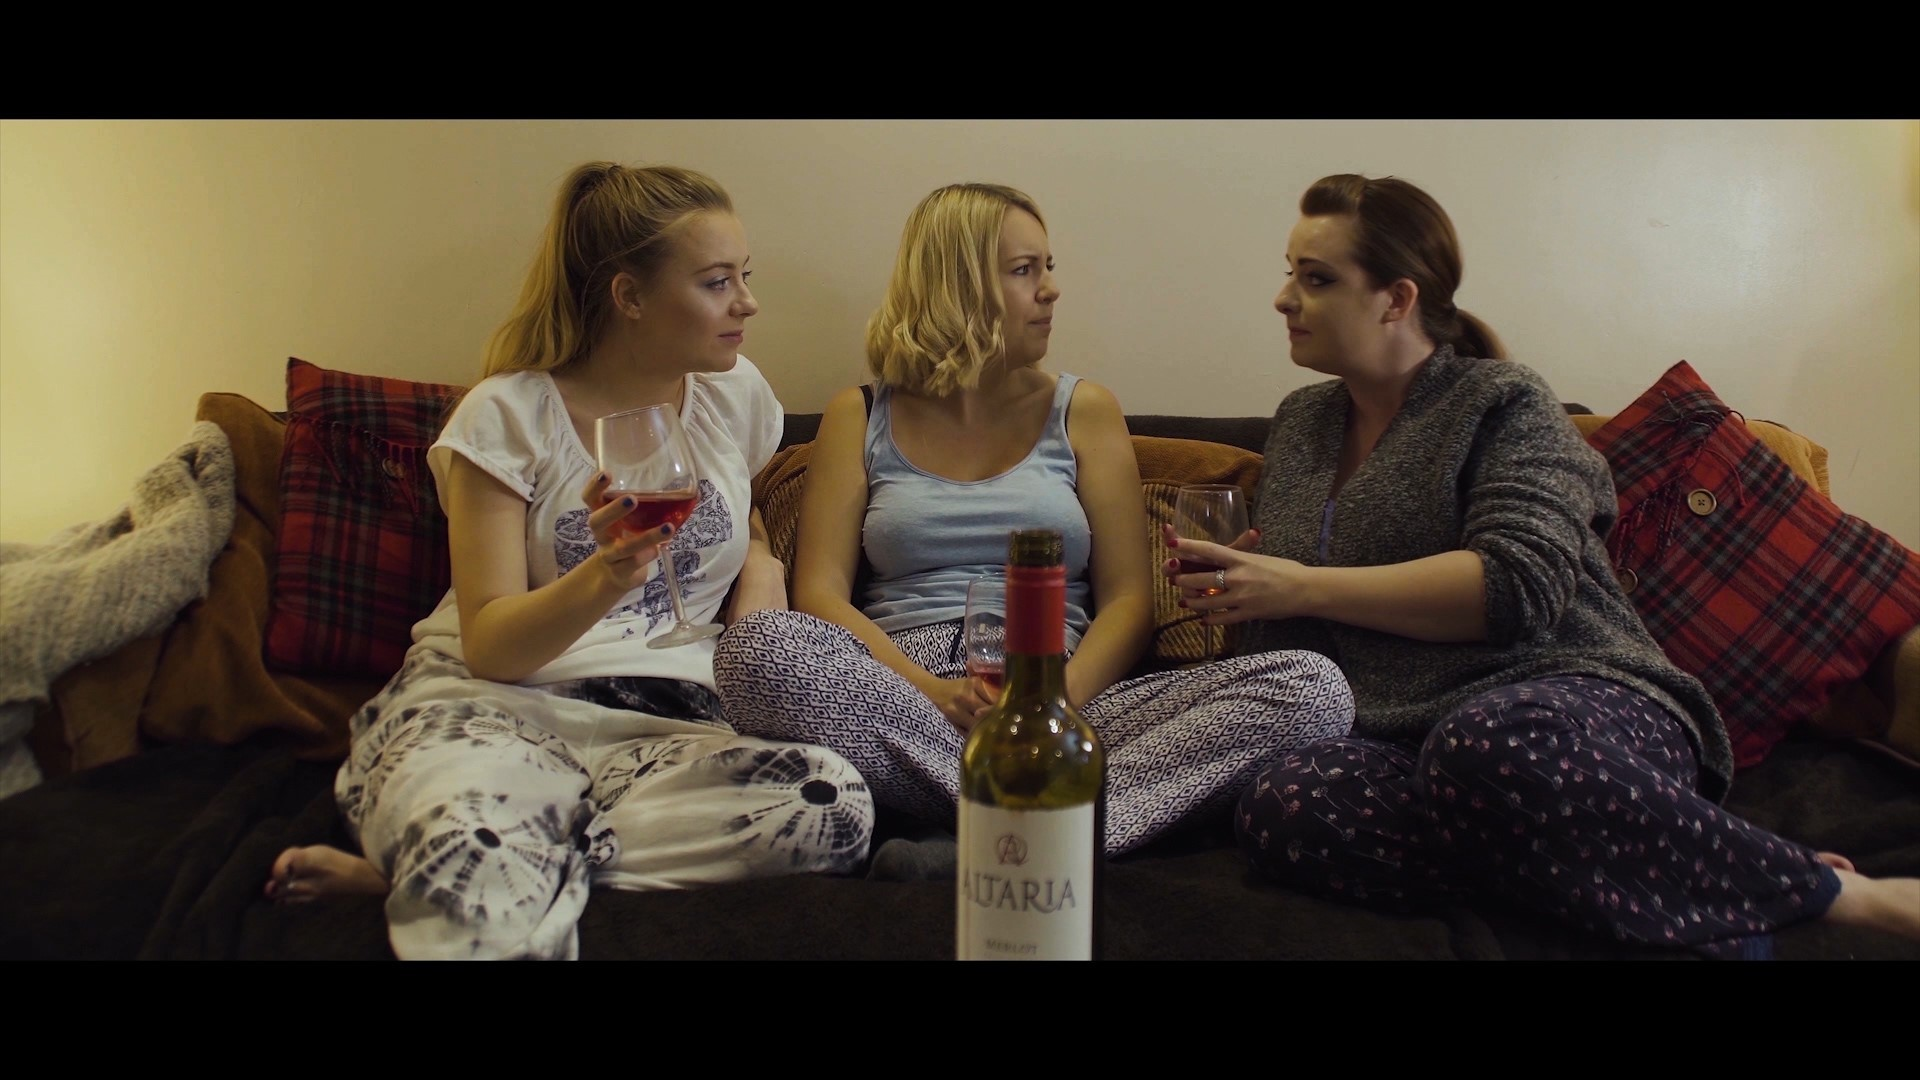 A still from James Wilsher's Sisters